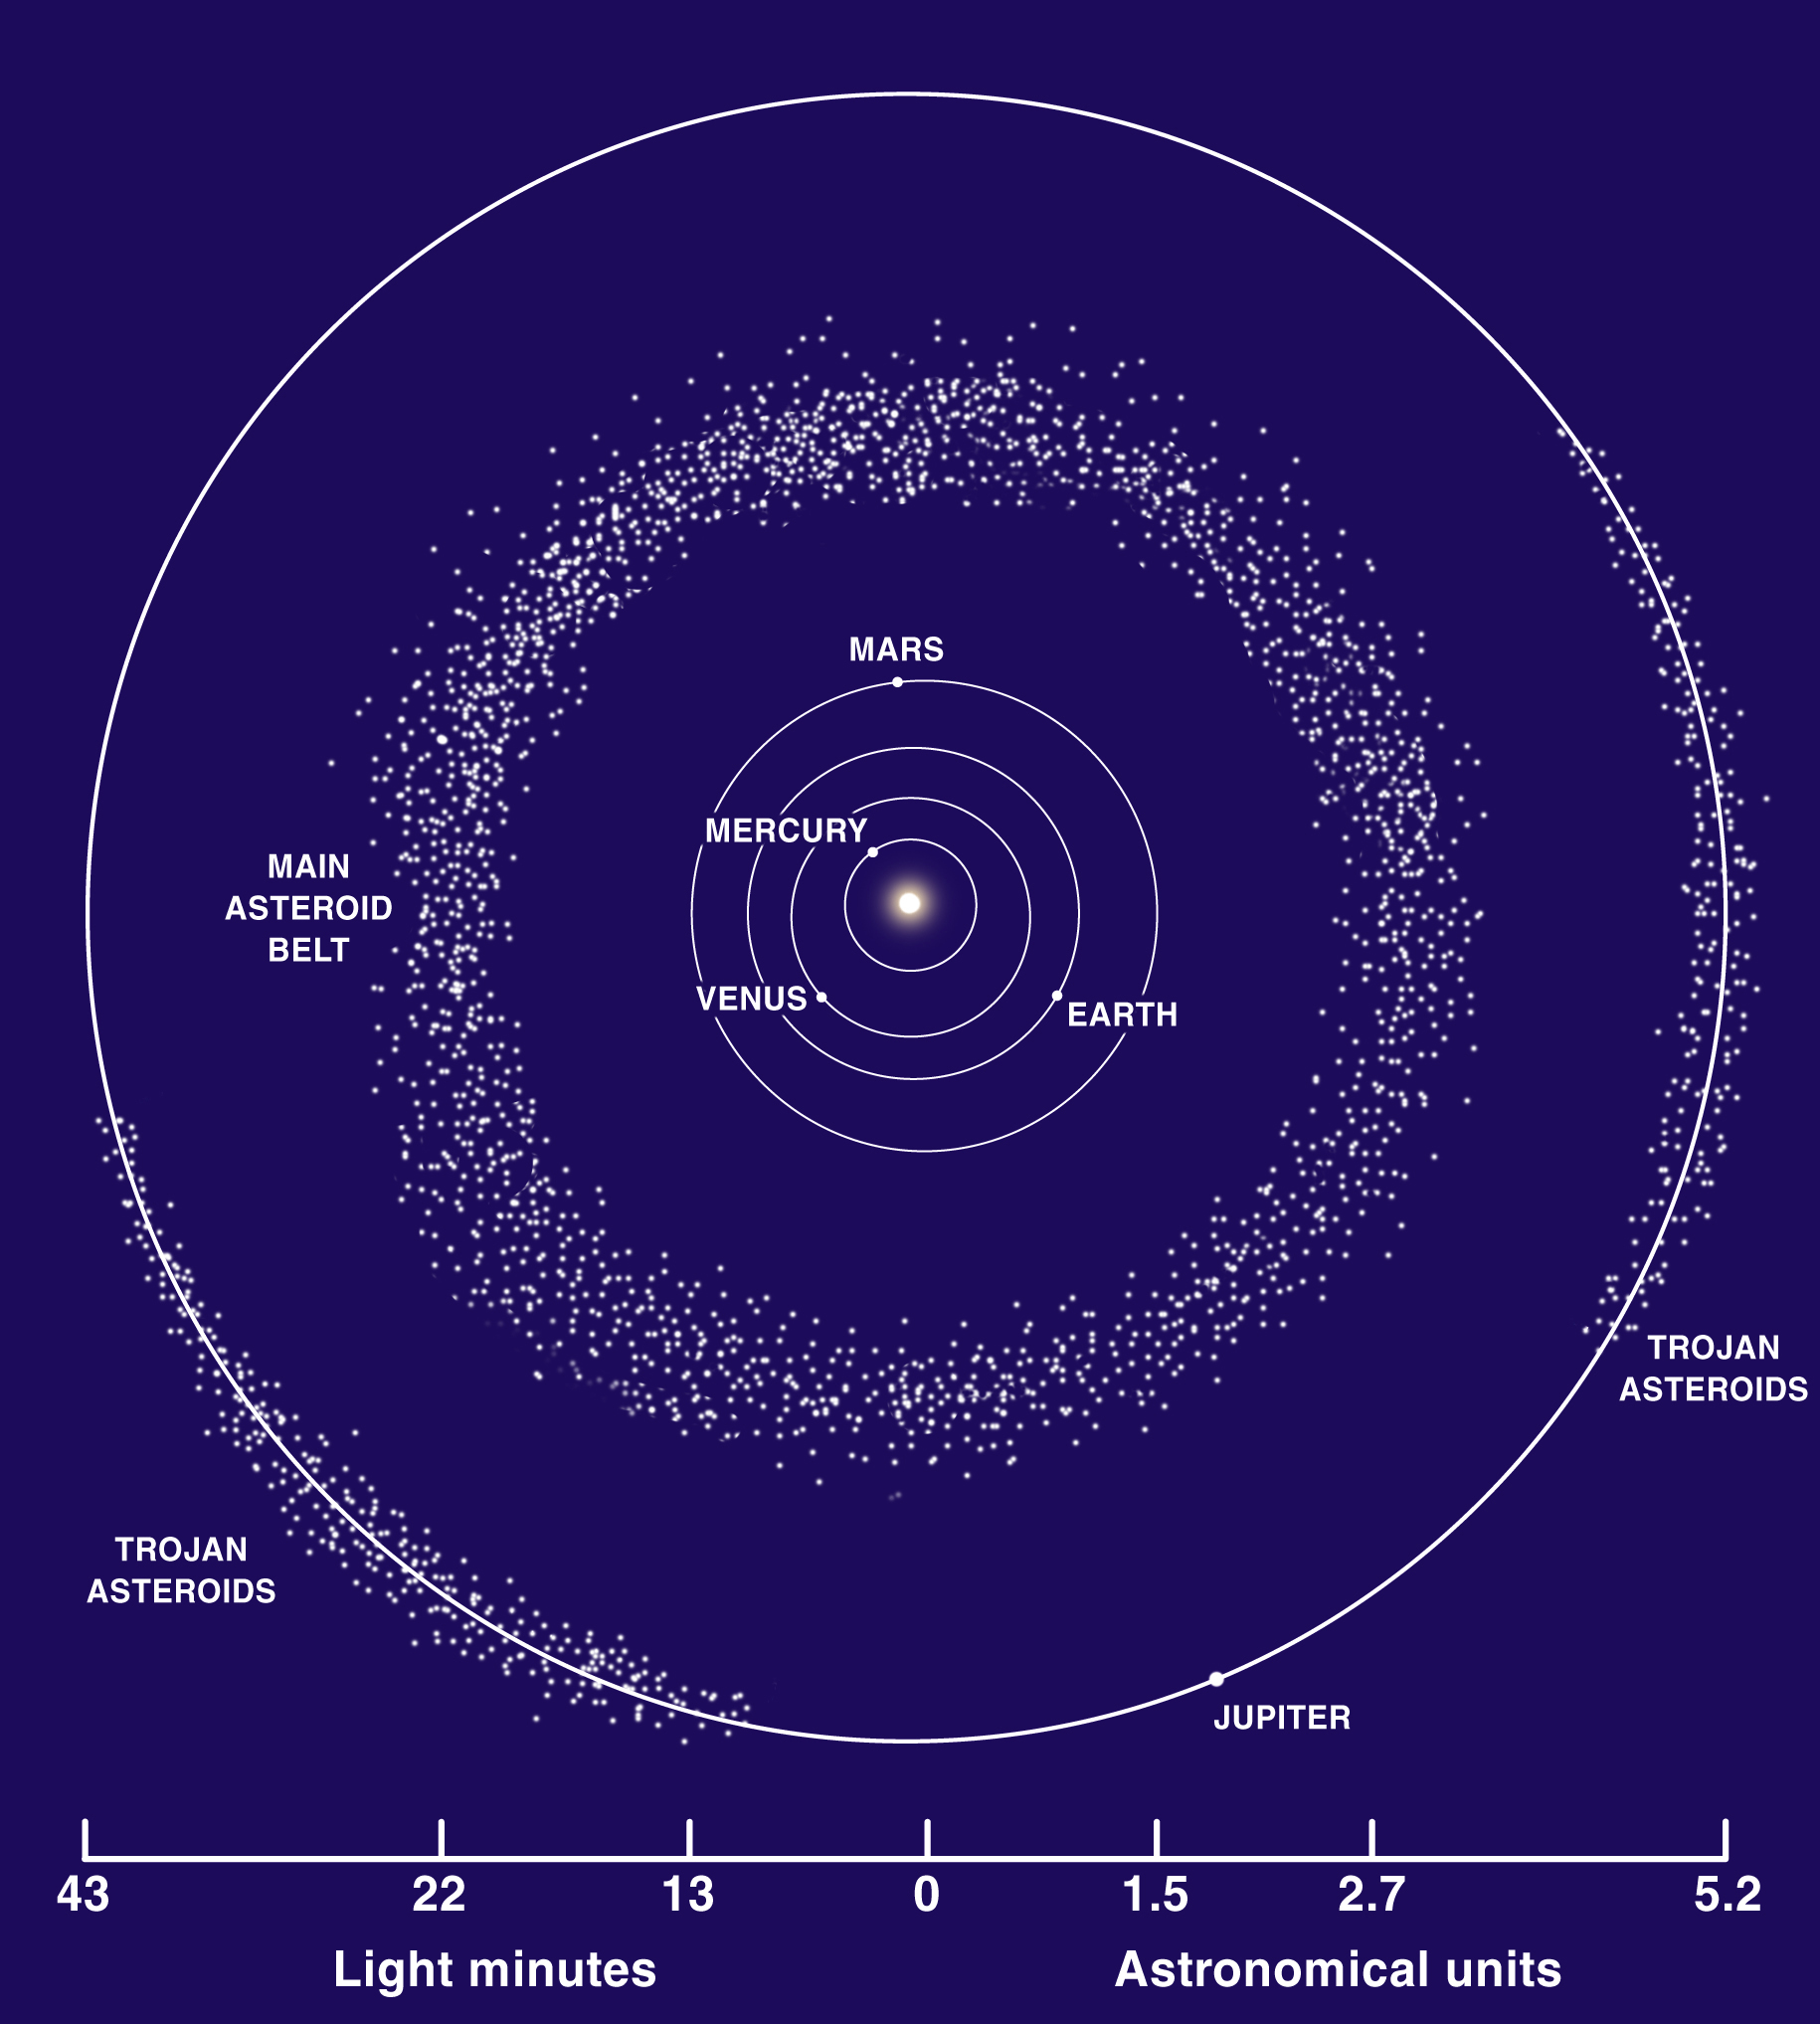 Diagram showing the locations of the inner solar system planets, the Main Asteroid Belt, and Jupiter and the two groups of Trojan asteroids. The Lucy spacecraft will explore six asteroids in the Trojan group that leads Jupiter in its orbit (the L4 Lagrangian point).